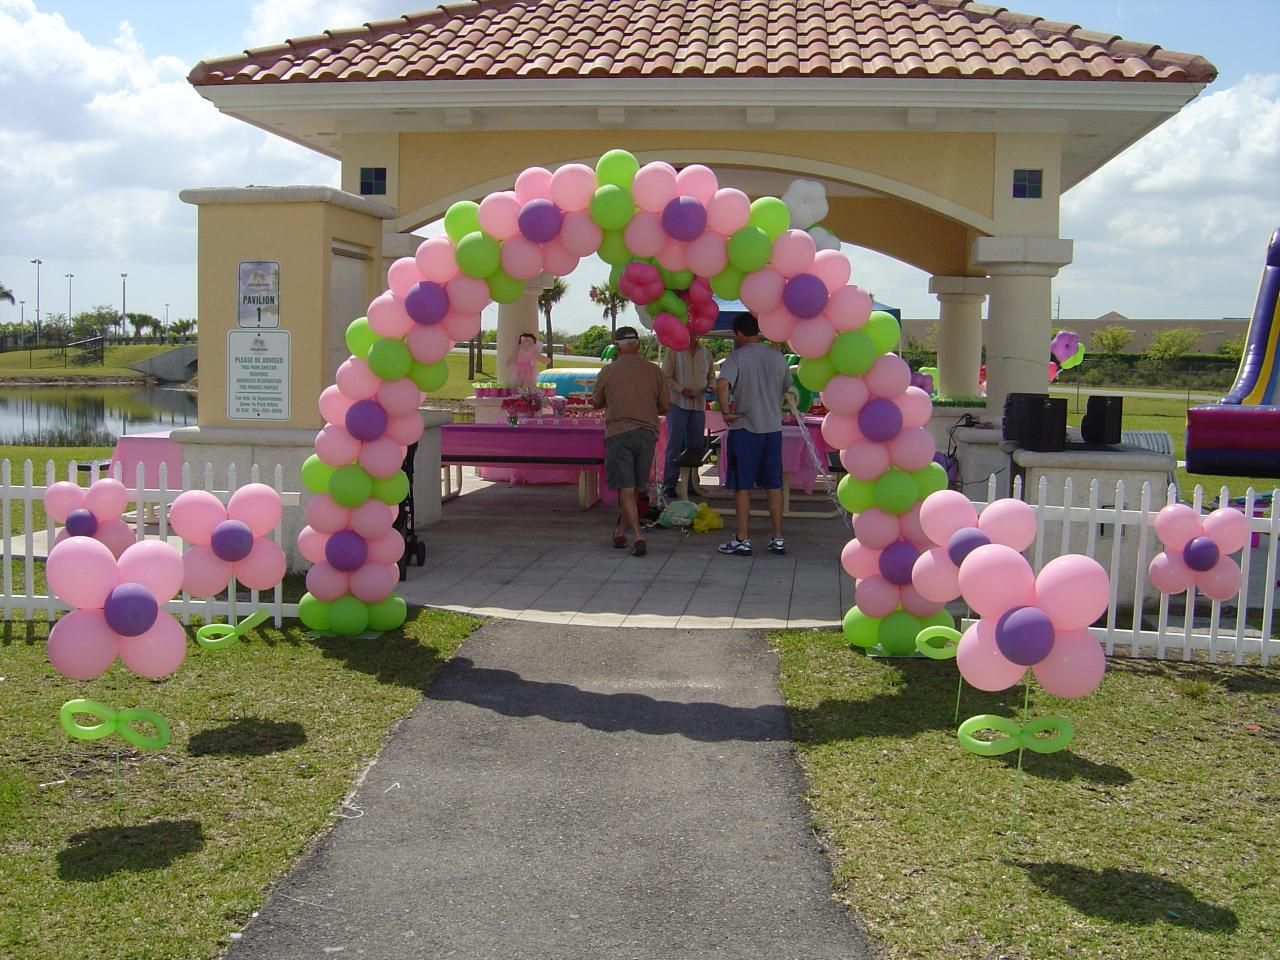 balloons very cute party balloon arches I need to learn how to make